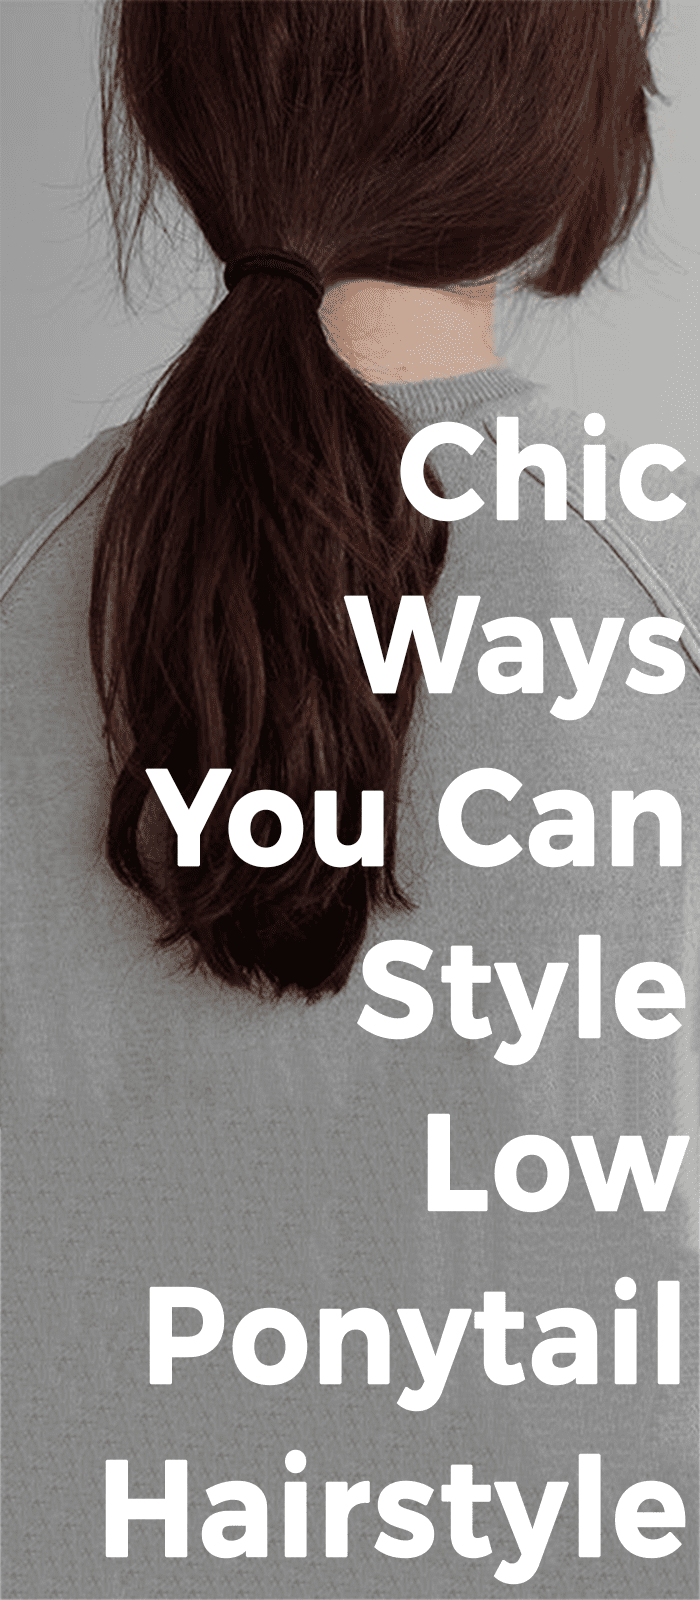 Chic Ways You Can Style Low Ponytail Hairstyle